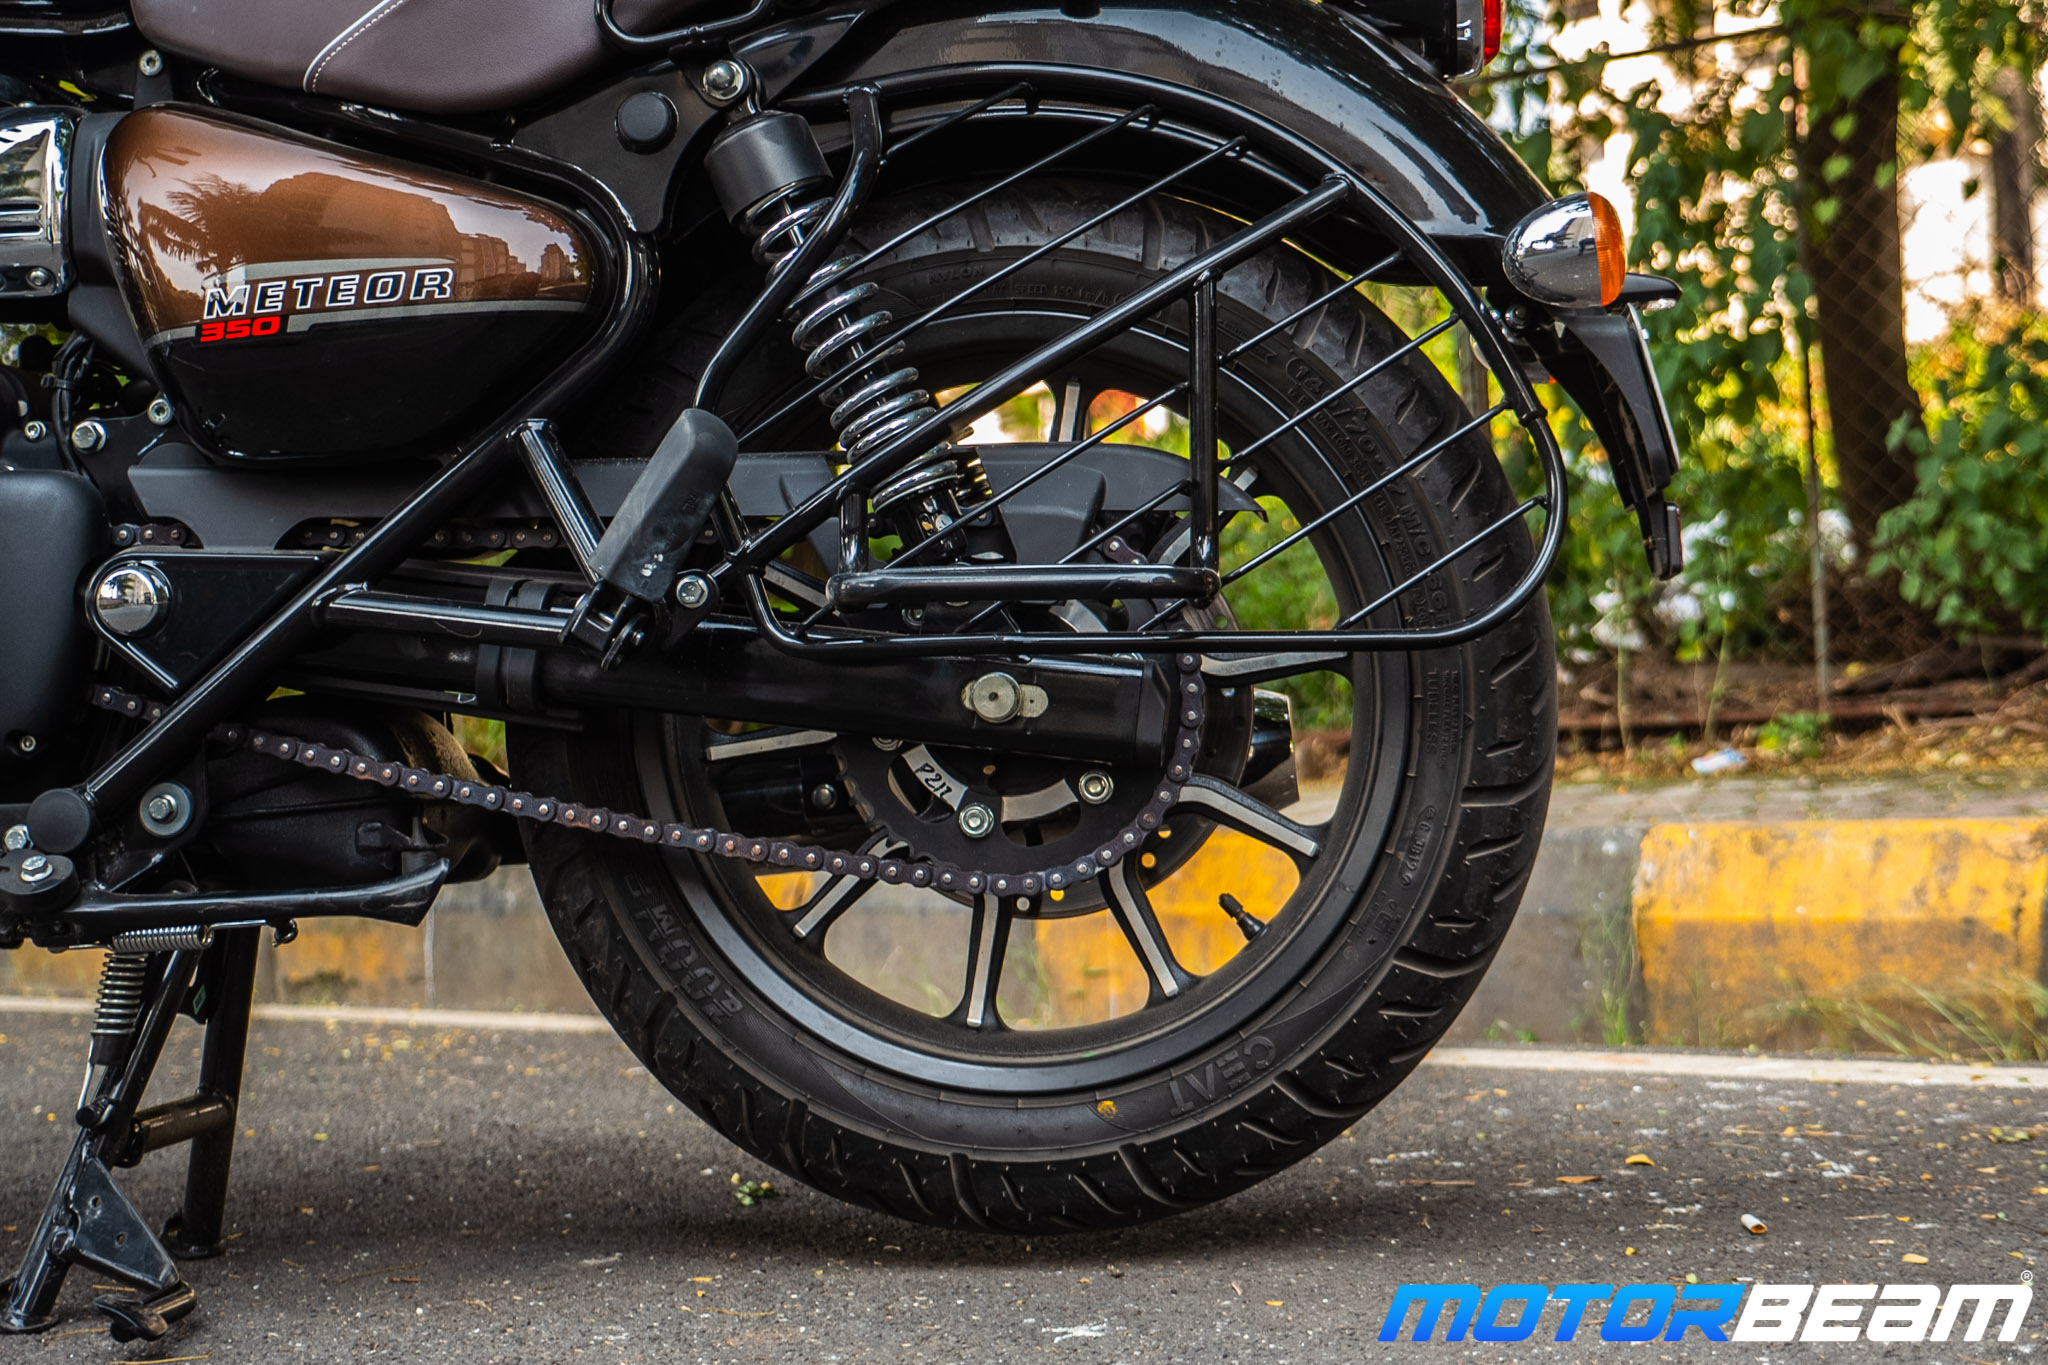 Royal Enfield Meteor 350 Review 26